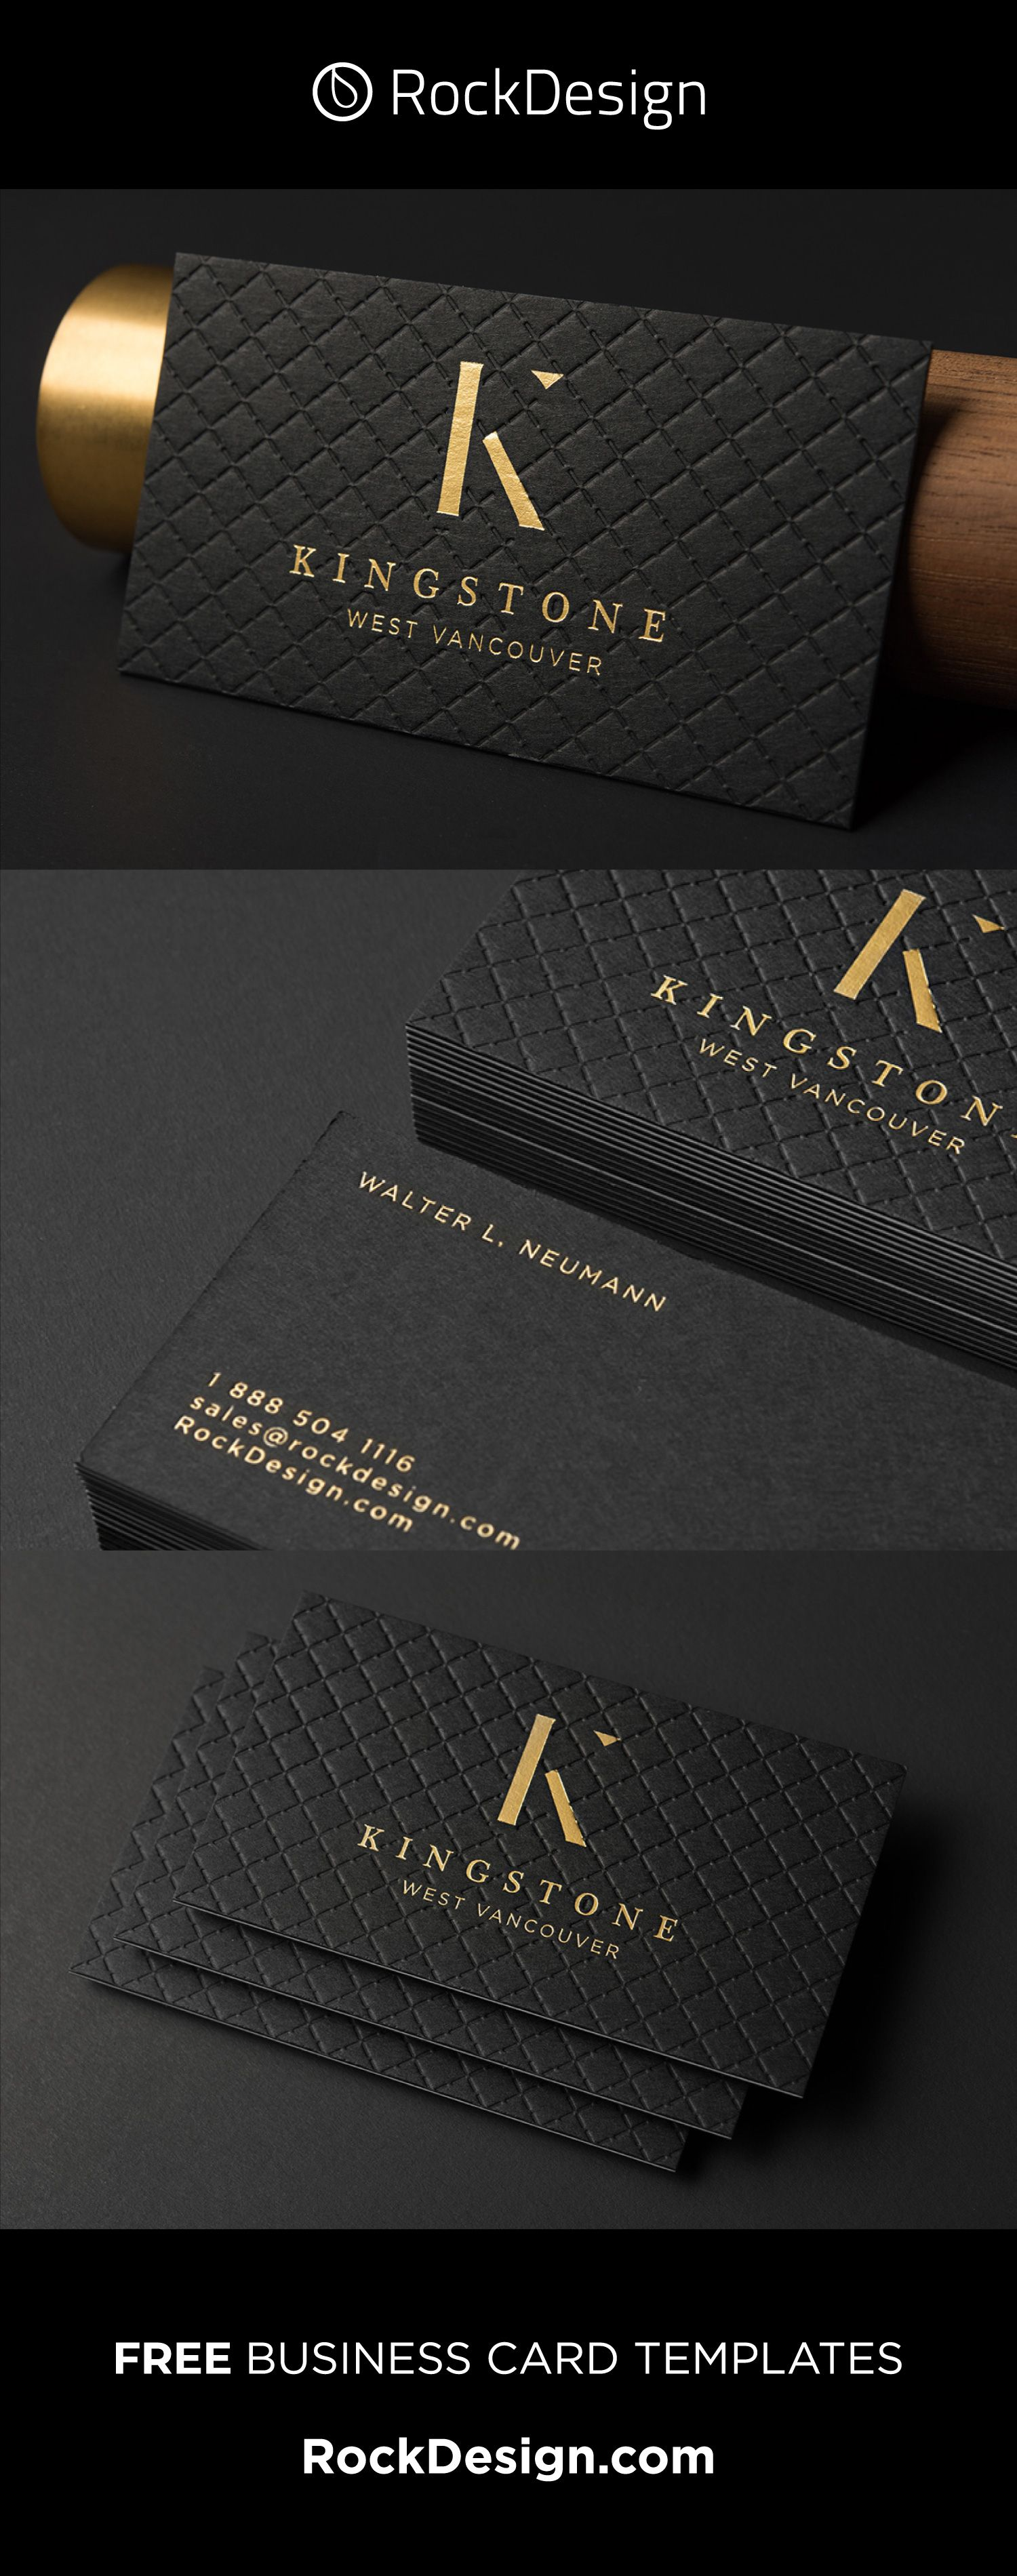 Luxury Realtor Triplex With Gold Foil Business Card Template Kingstone Foil Business Cards Gold Foil Business Cards Business Card Design Black